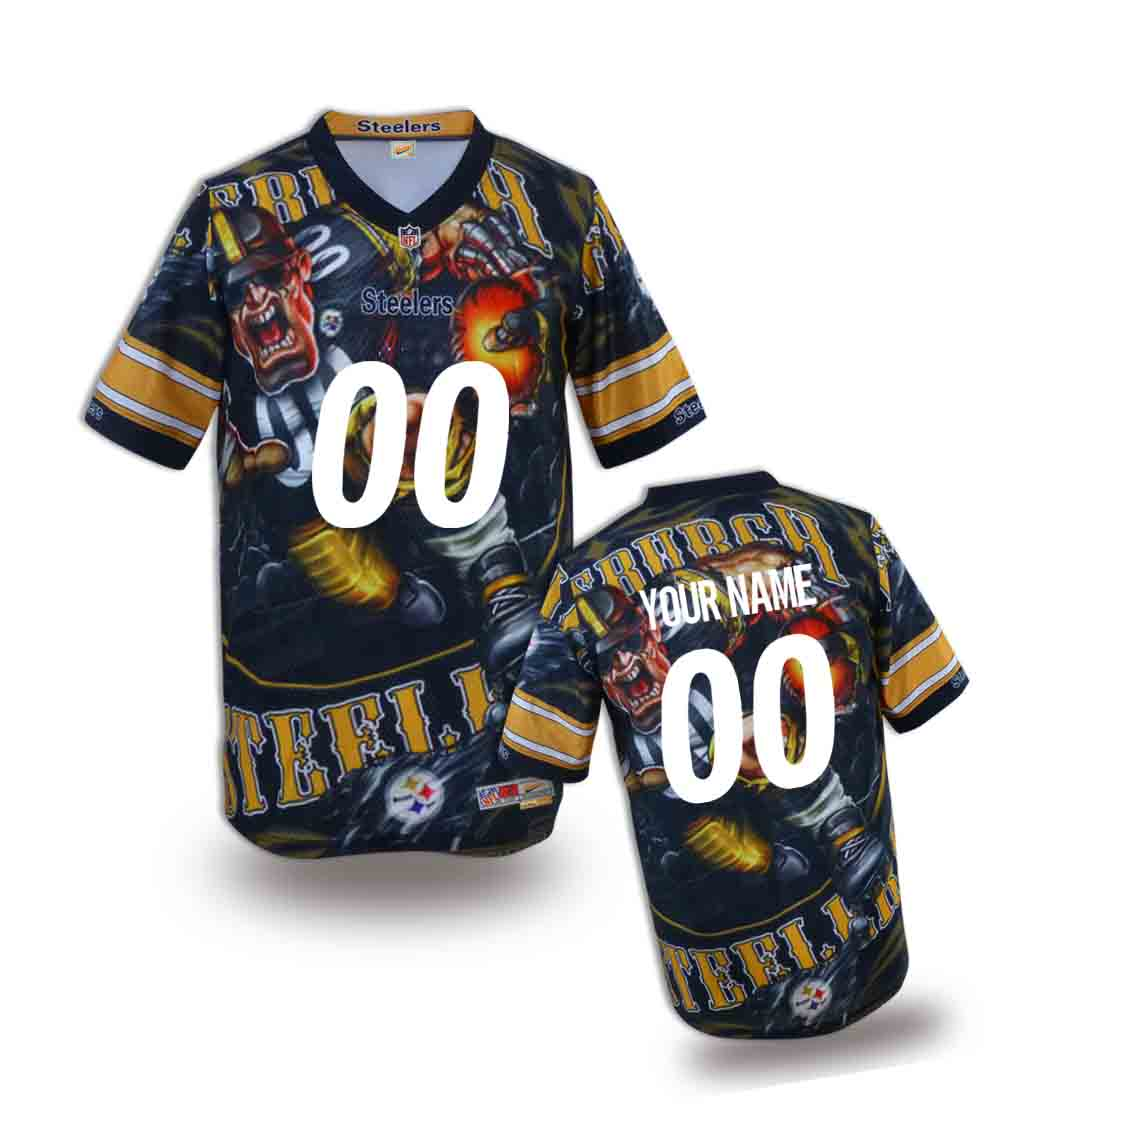 Nike Steelers Customized Fashion Stitched Youth Jerseys01